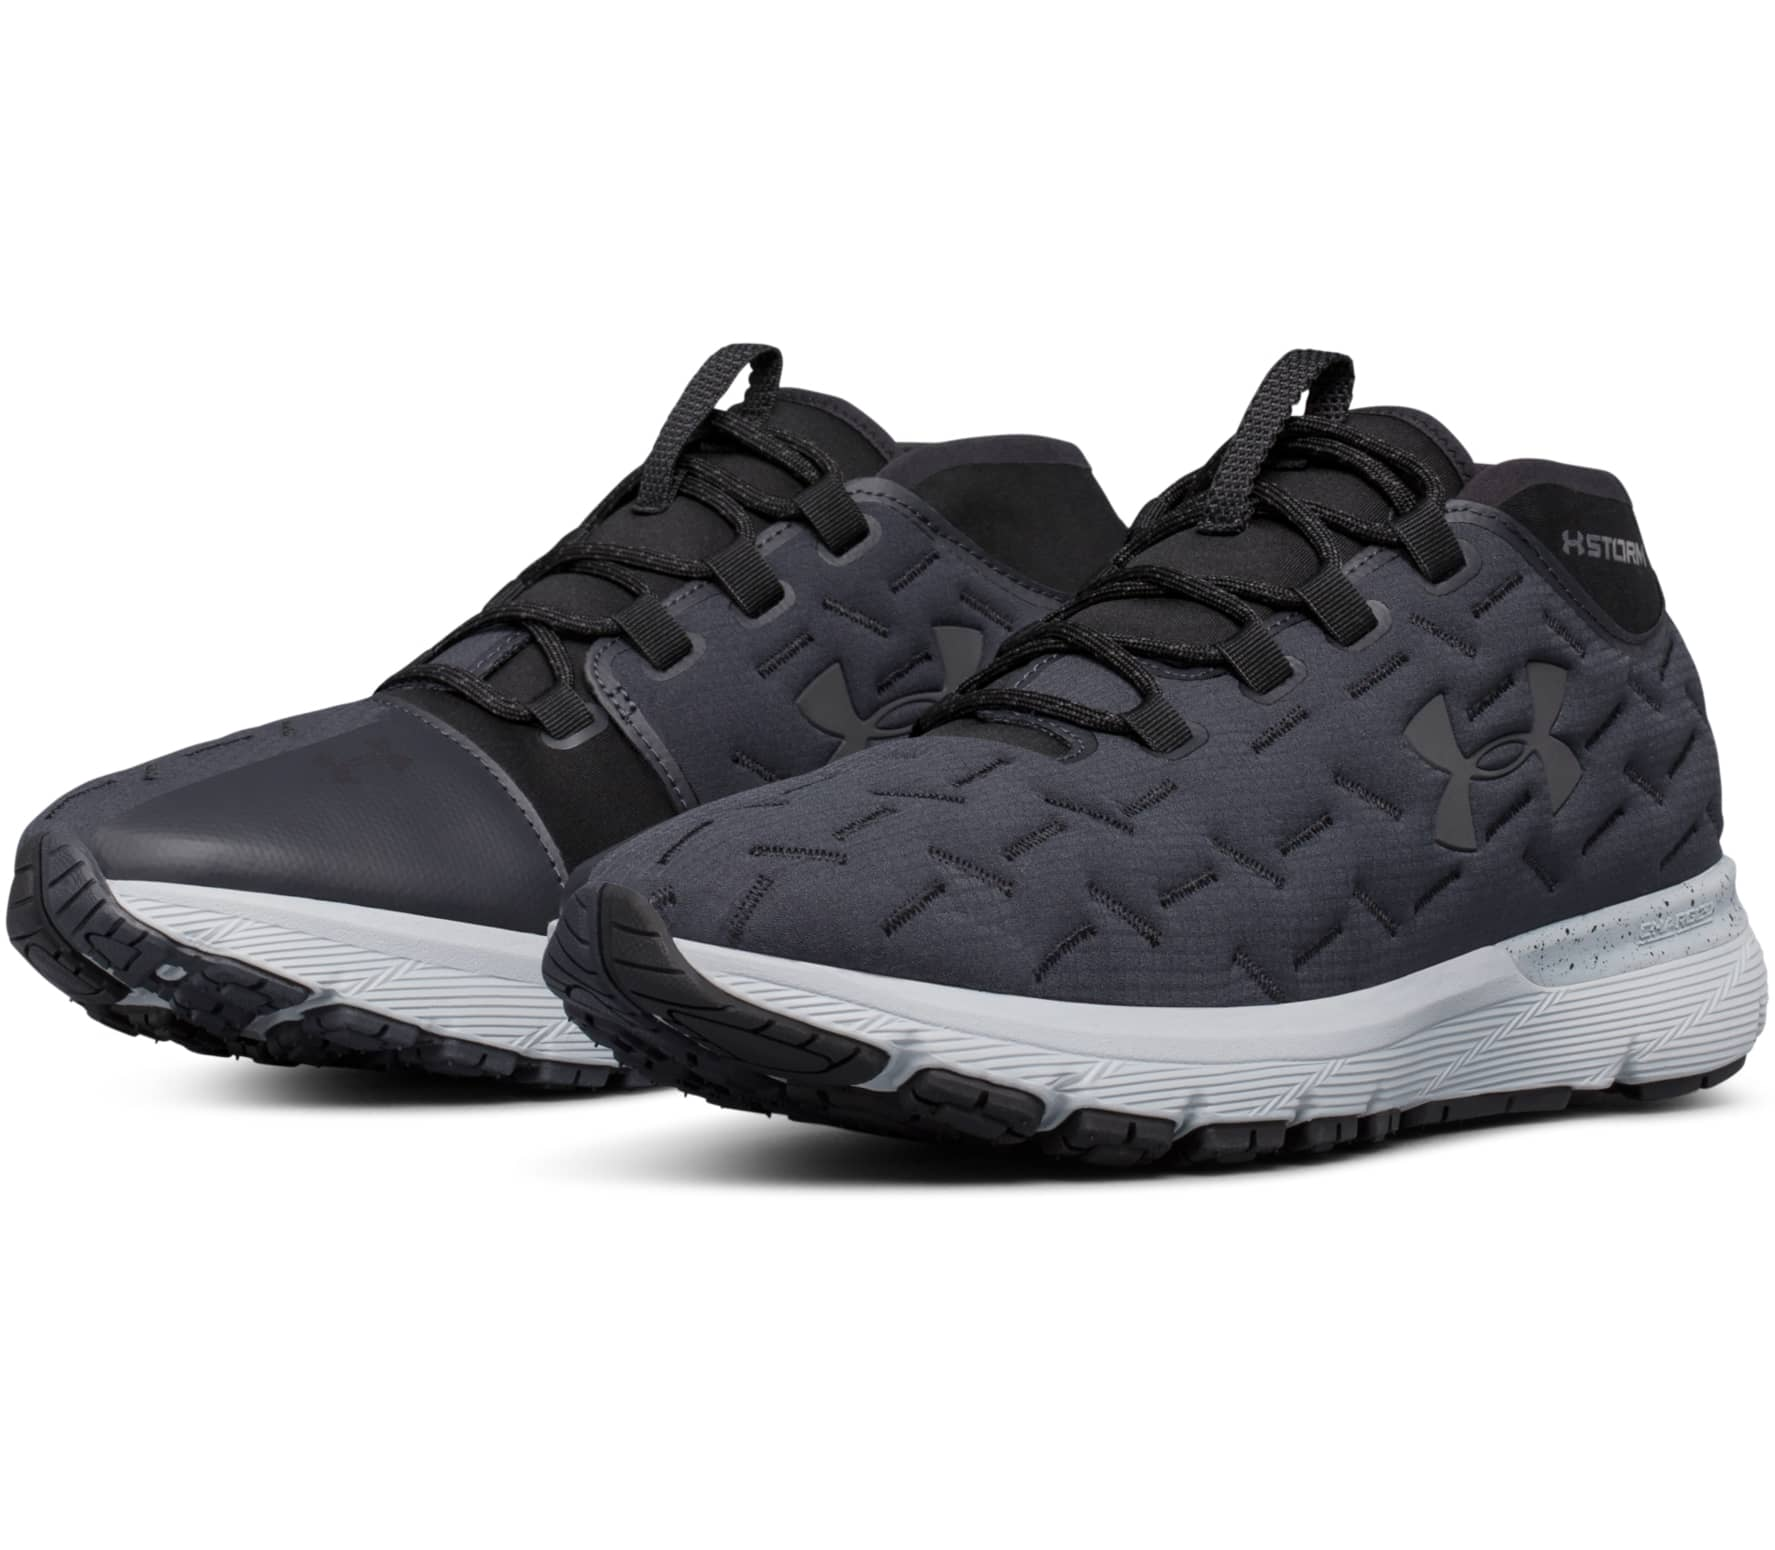 separation shoes 182b6 ab1e6 Under Armour Charged Reactor Men black